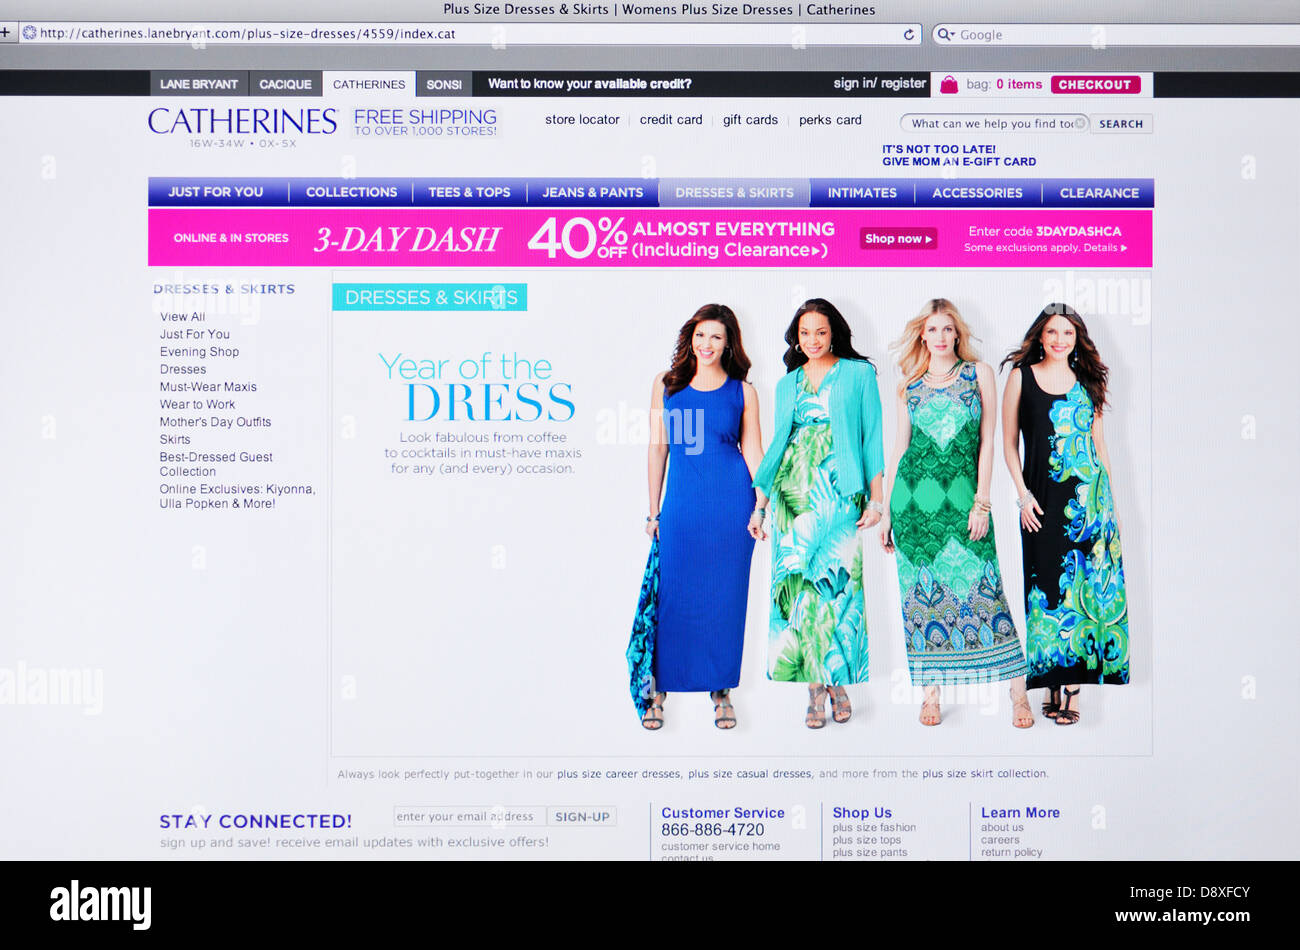 Lane Bryant Stock Photos & Lane Bryant Stock Images - Alamy